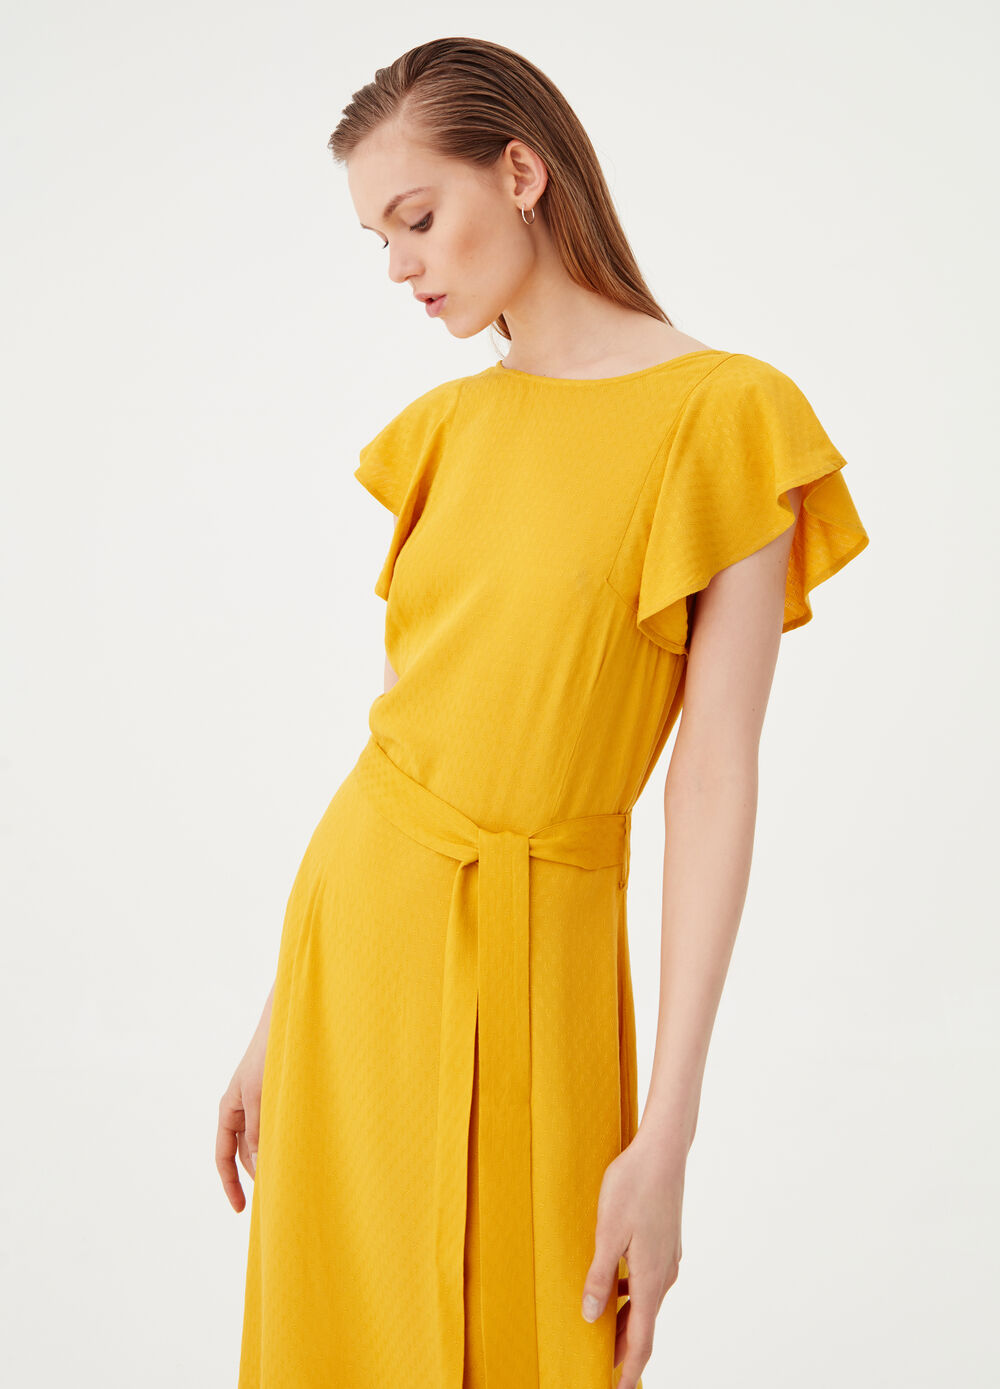 Asymmetric dress with flounces and belt